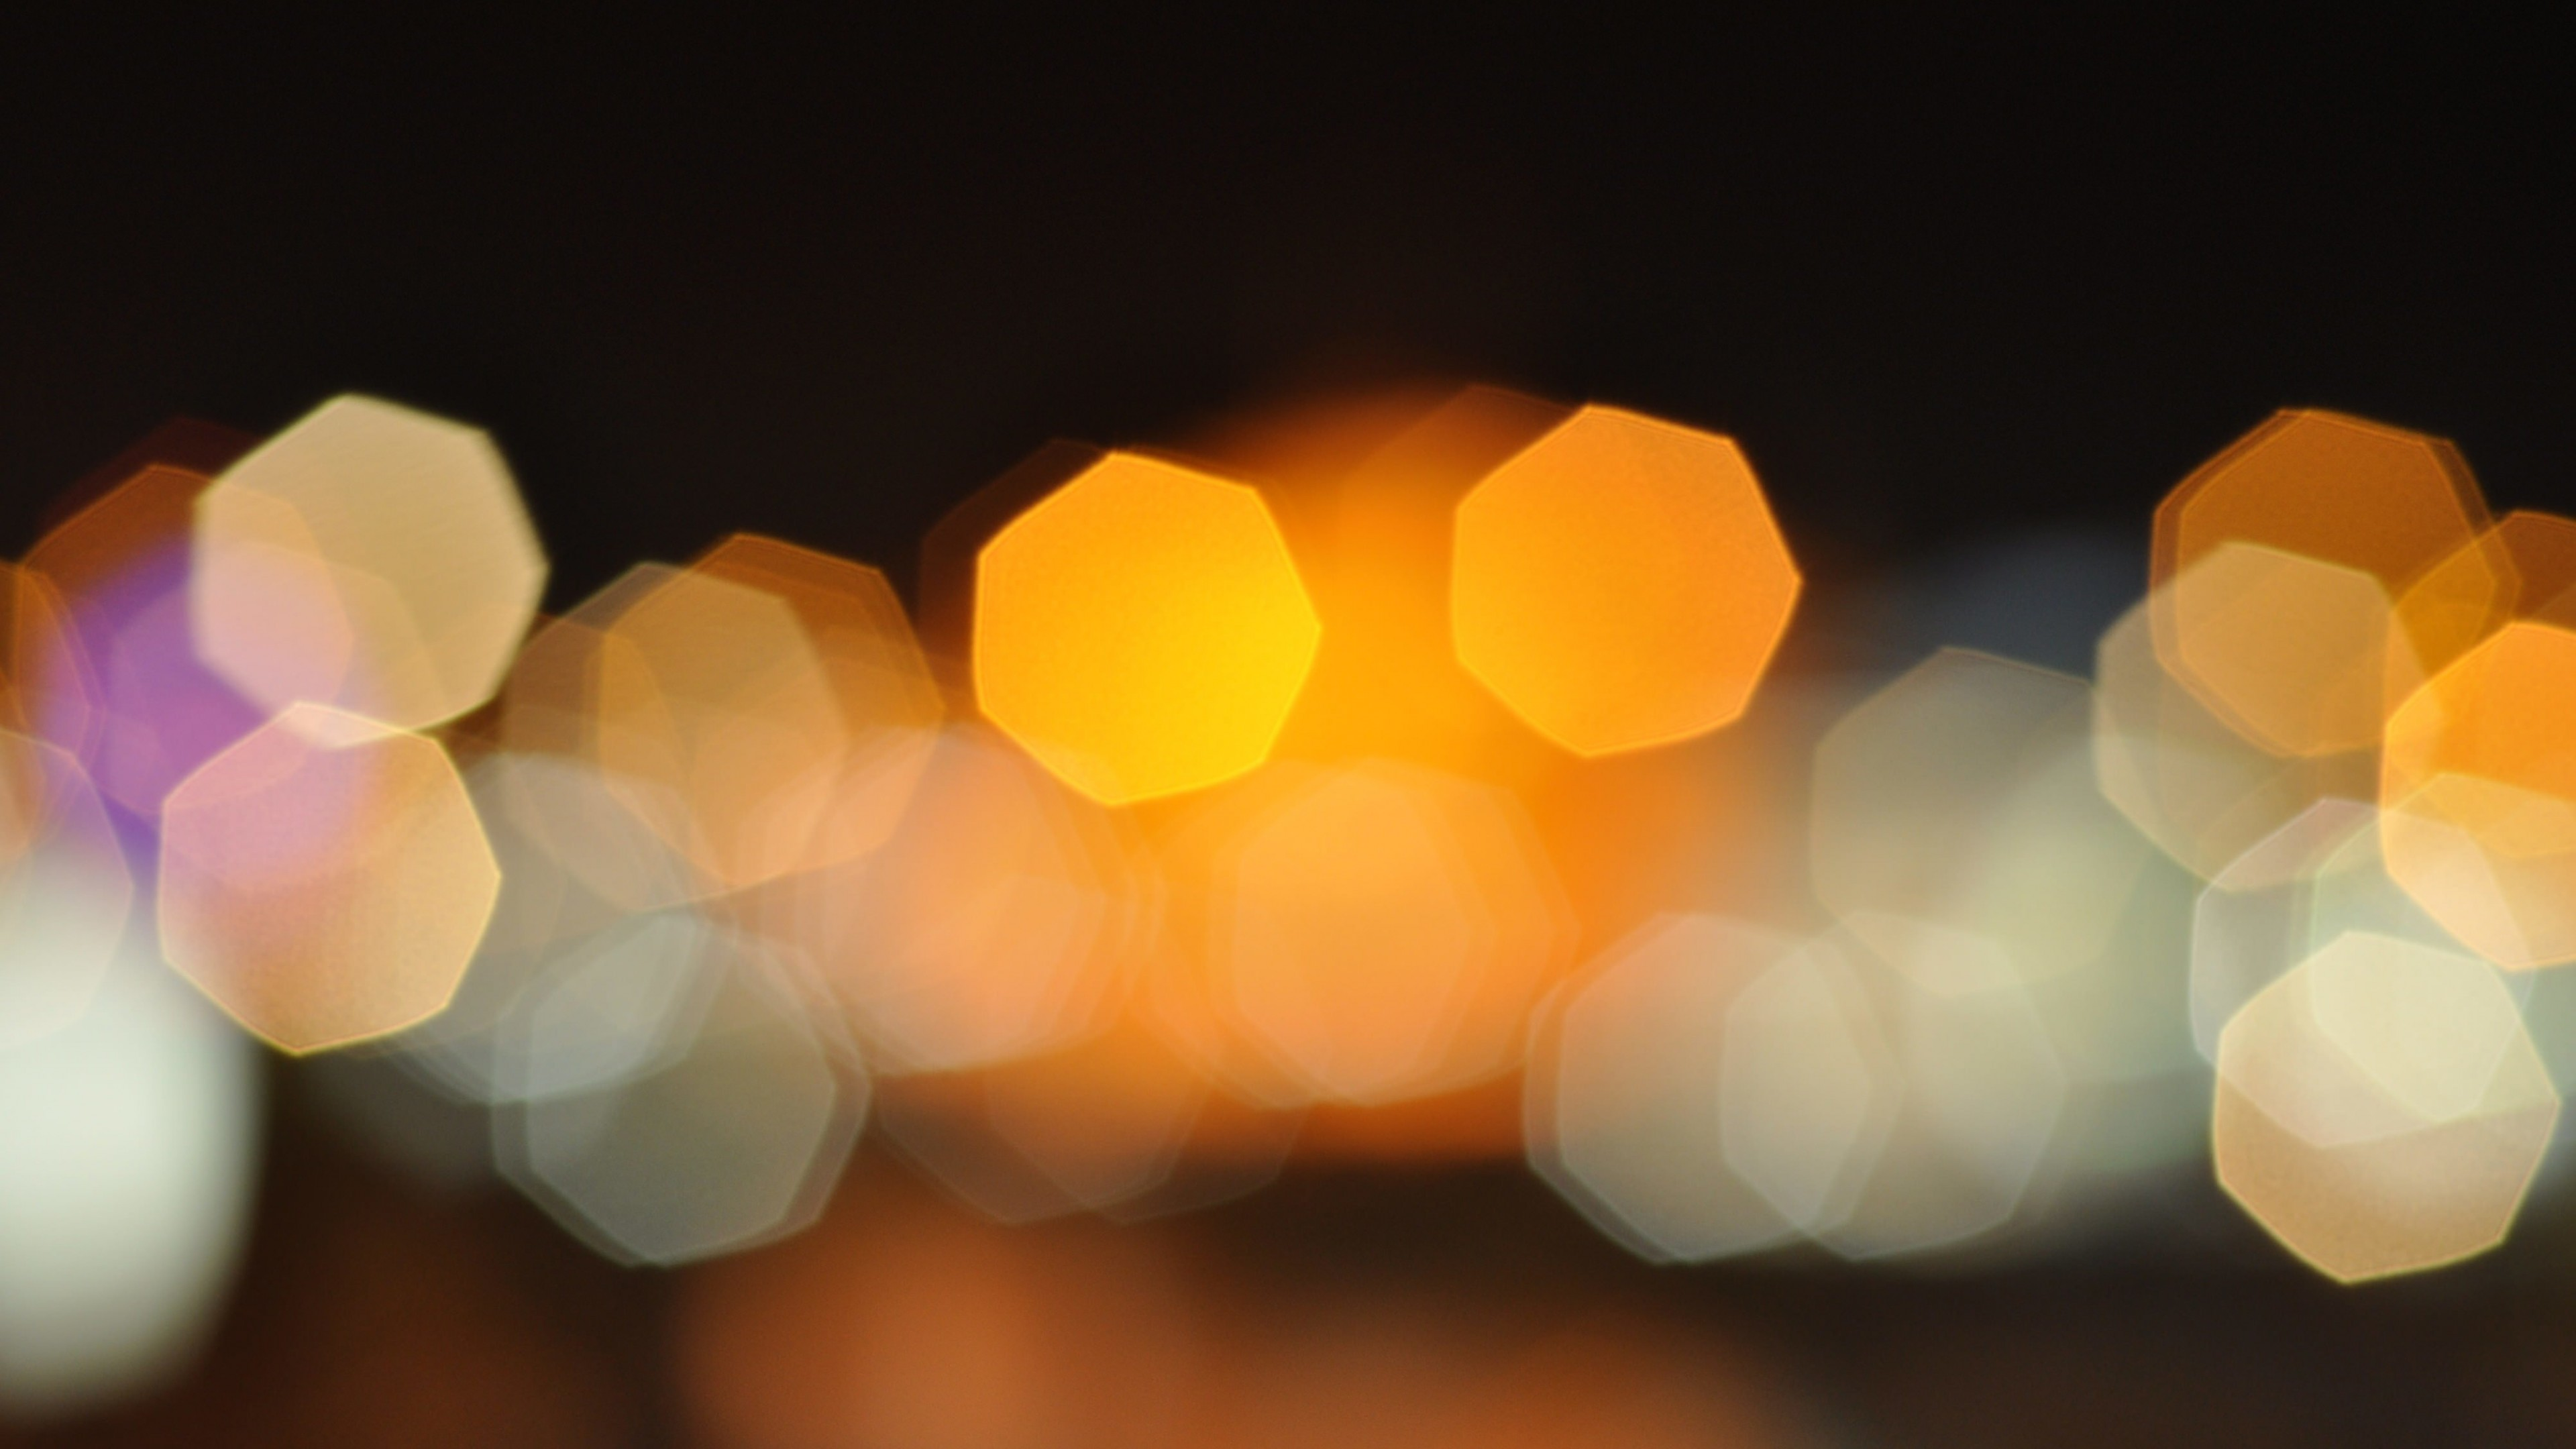 Blurred City Lights Wallpaper for Desktop 4K 3840x2160